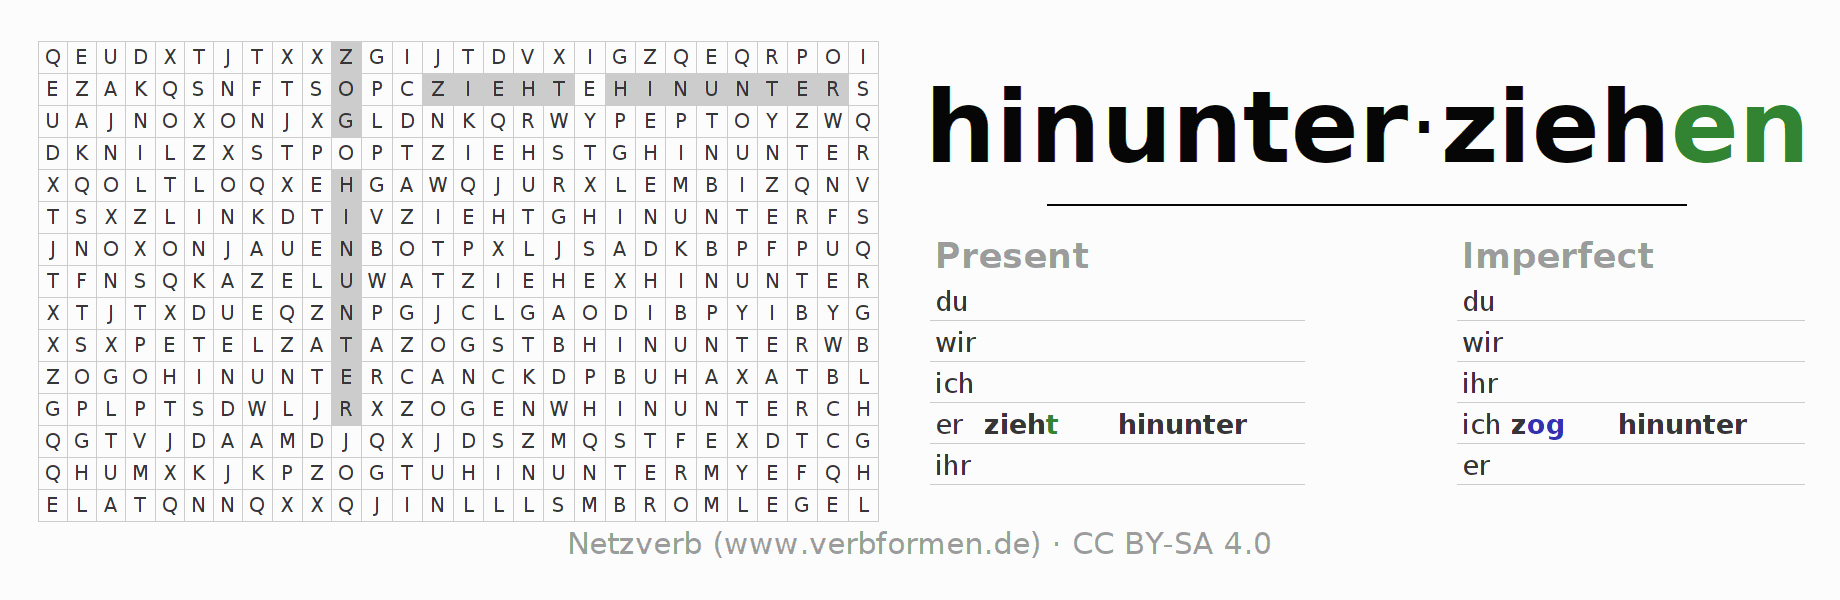 Word search puzzle for the conjugation of the verb hinunterziehen (hat)